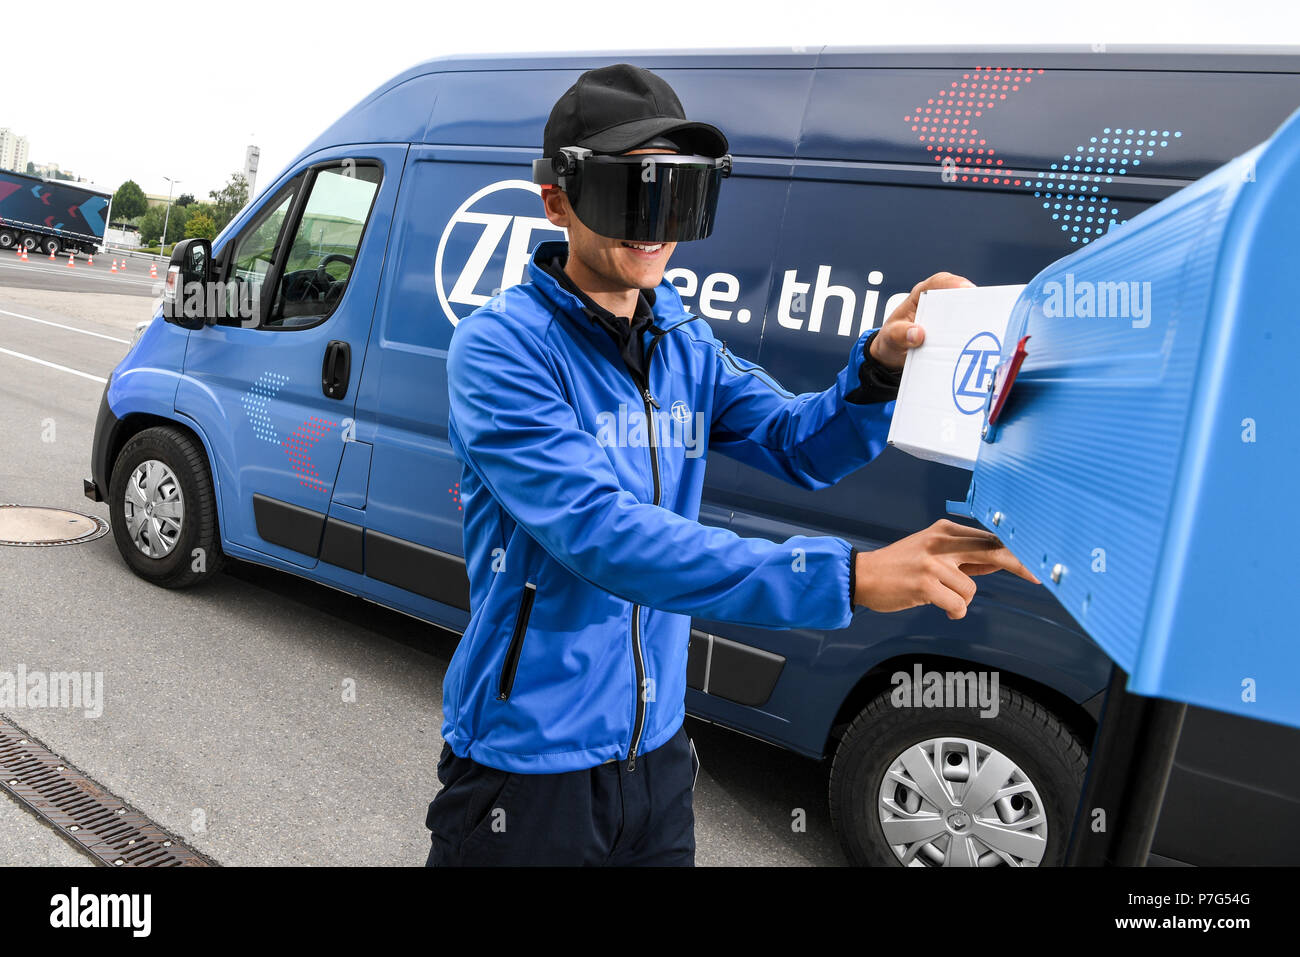 27 June 2018, Friedrichshafen, Germany: A ZF employee carries a package while the ZF Innovation Van drives on by itself, for example to move out of a no-parking zone. A pair of data glasses provides delivery personnel with information on the next stop. Photo: Felix Kästle/dpa Stock Photo